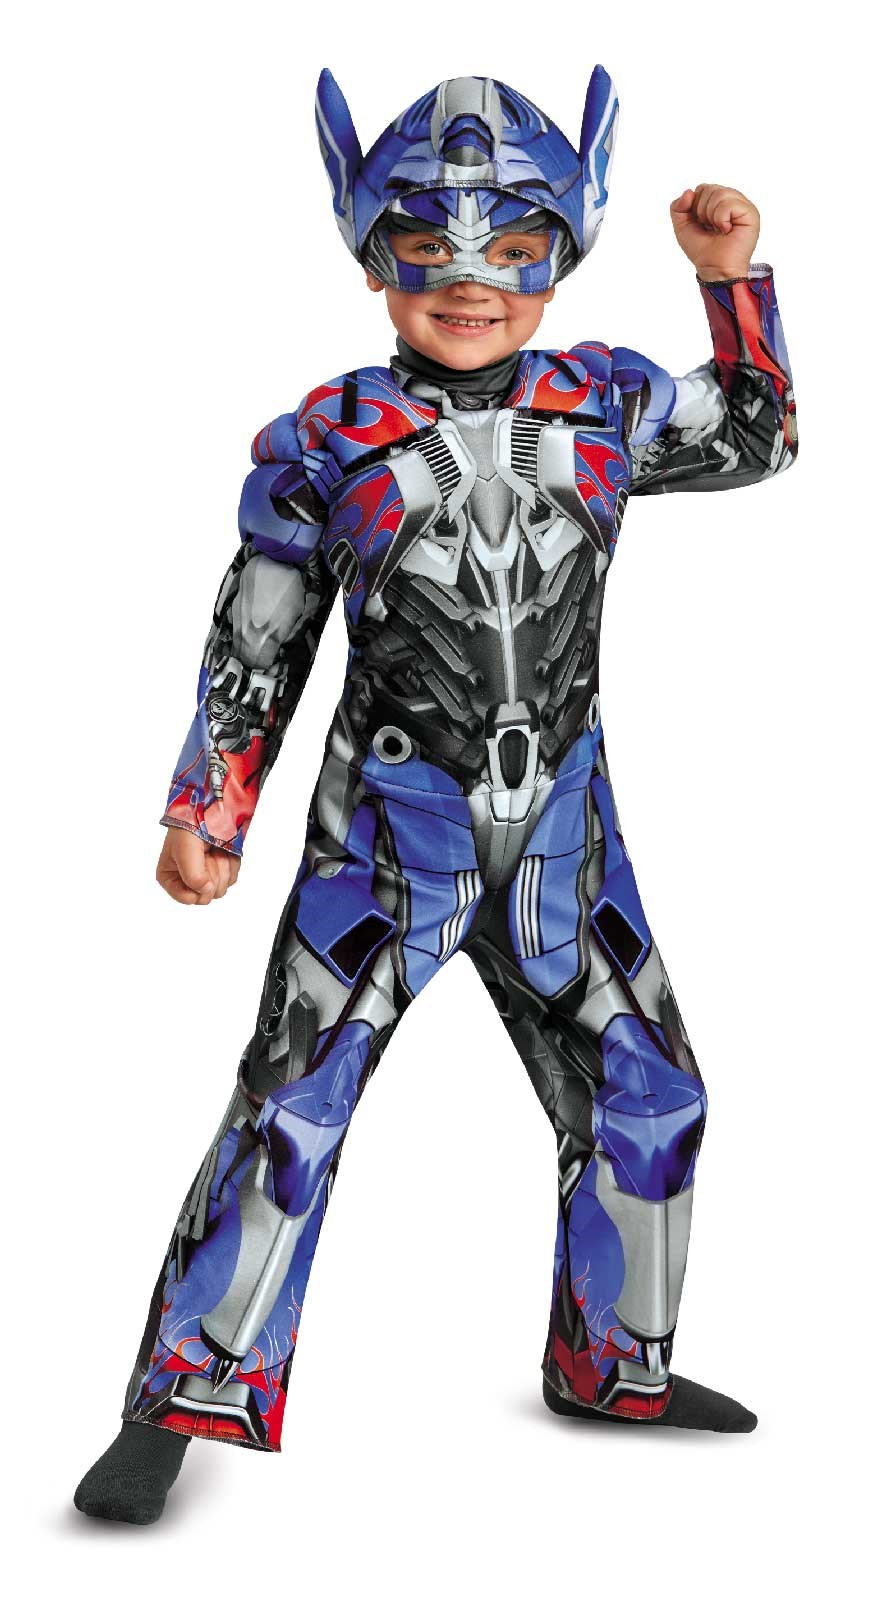 Transformers Age of Extinction Optimus Prime Toddler Muscle Costume 3T-4T